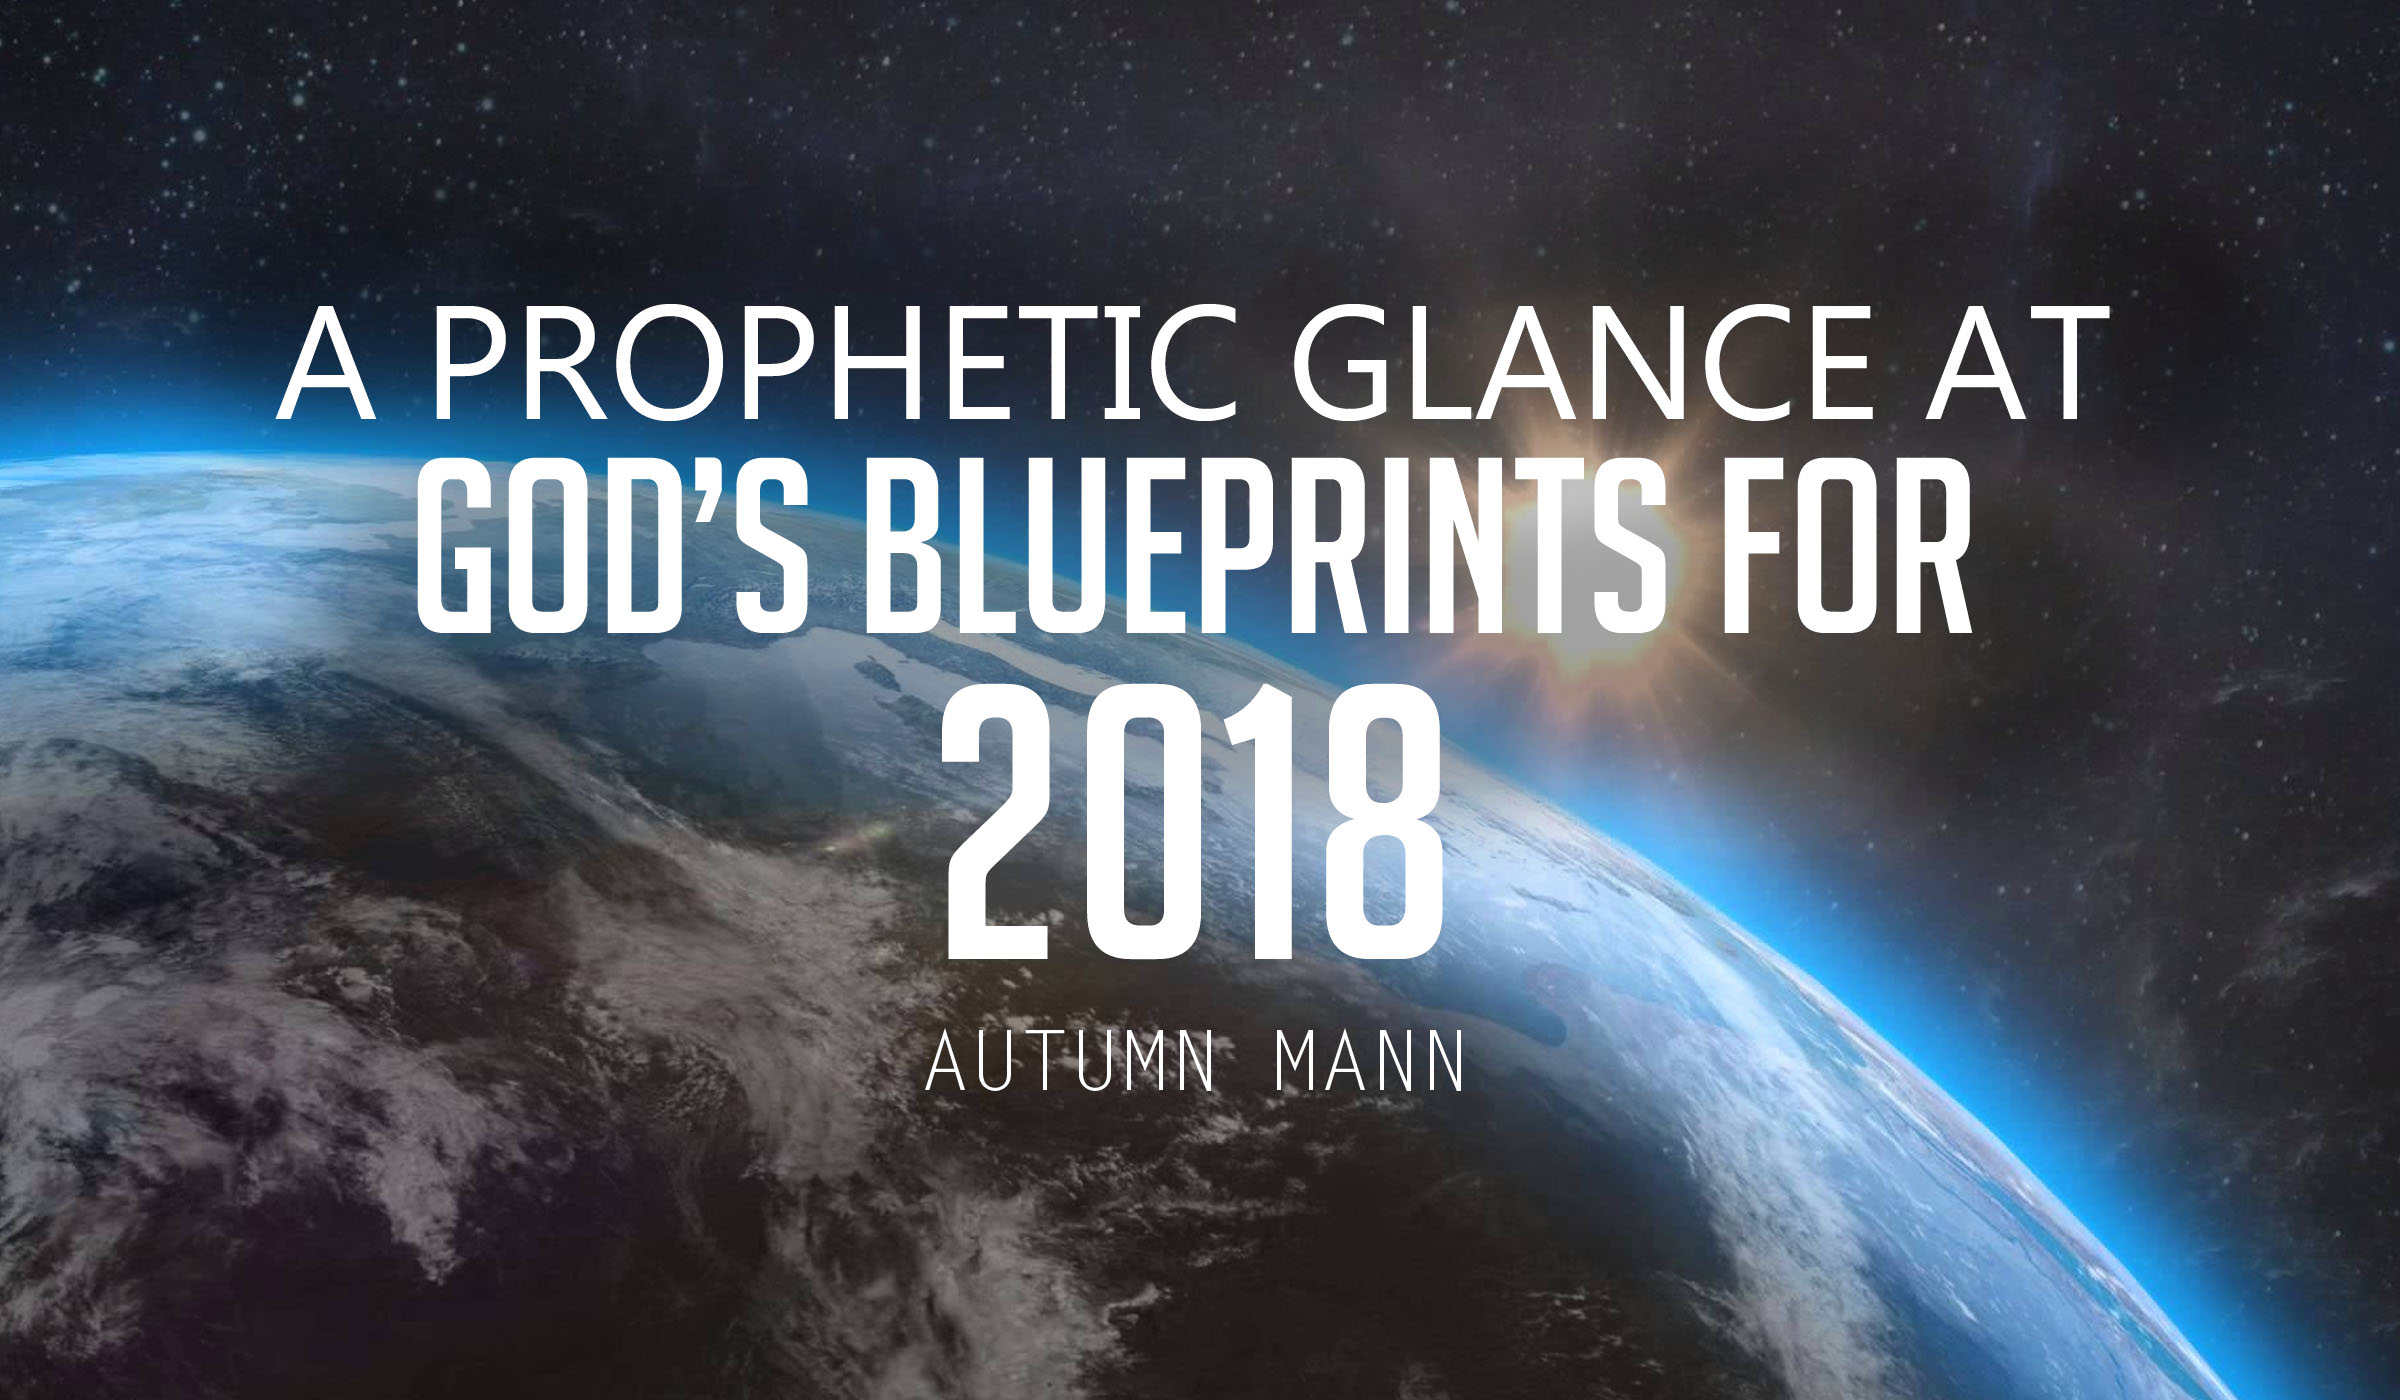 A Prophetic Glance at God's Blueprints for 2018